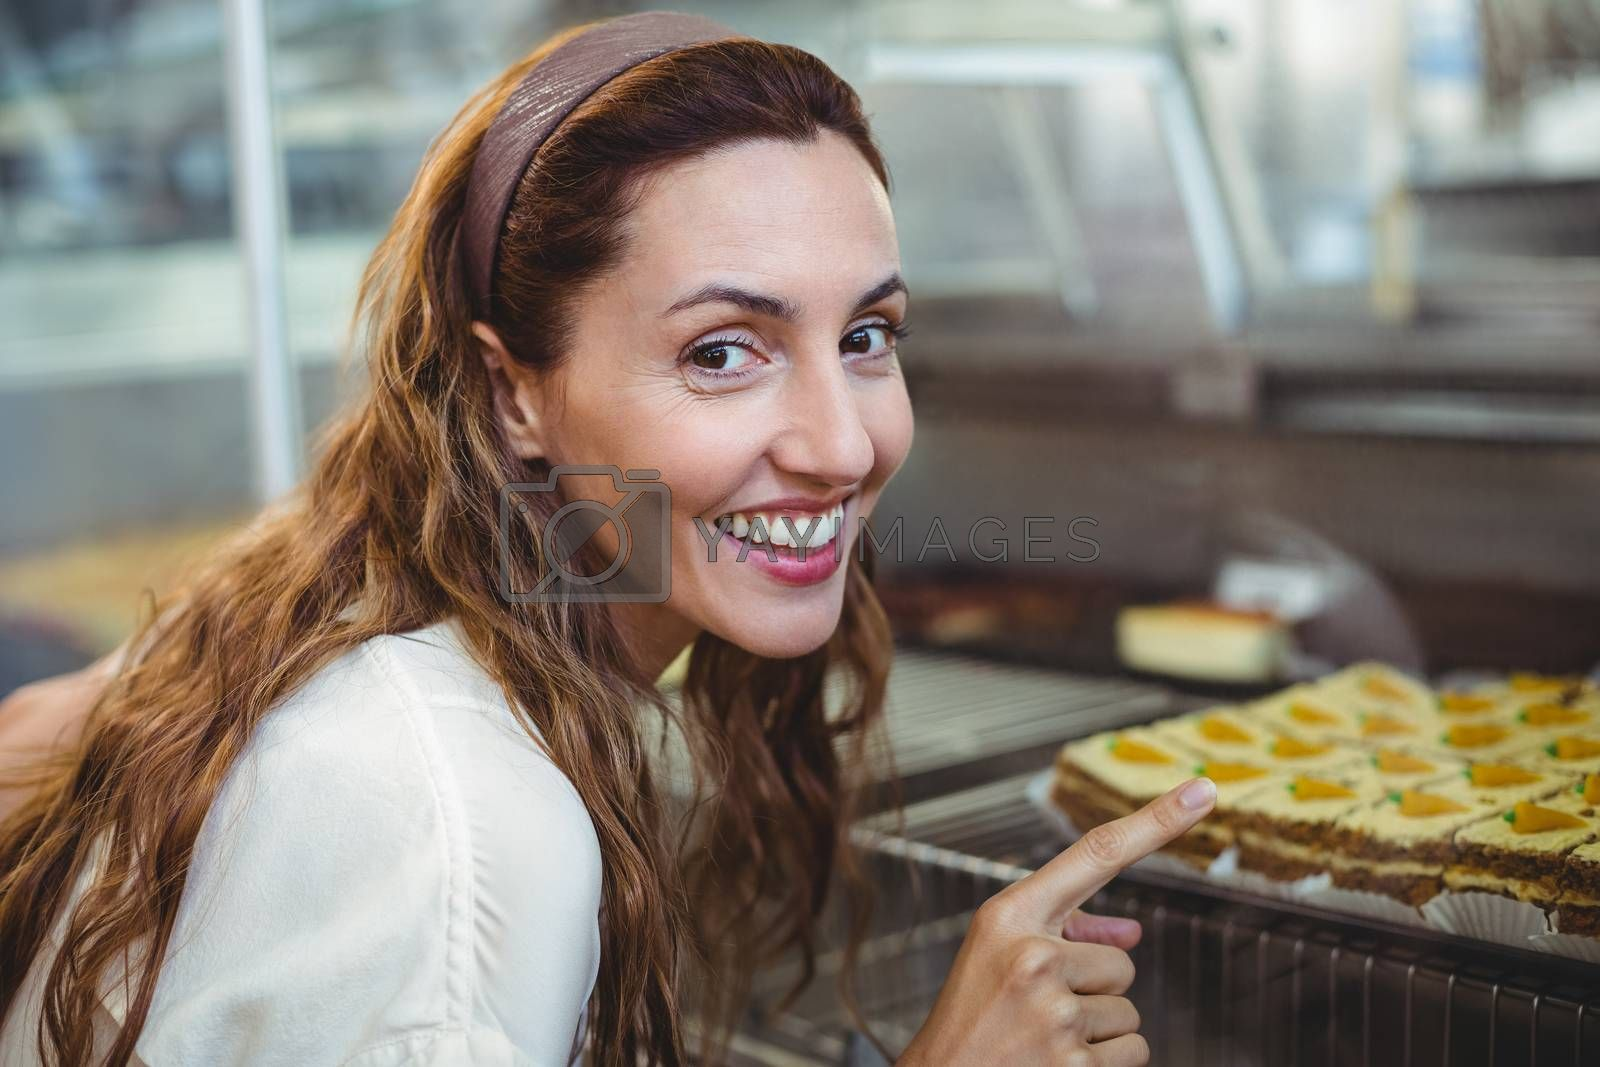 Royalty free image of Pretty brunette pointing at pastries through the glass by Wavebreakmedia